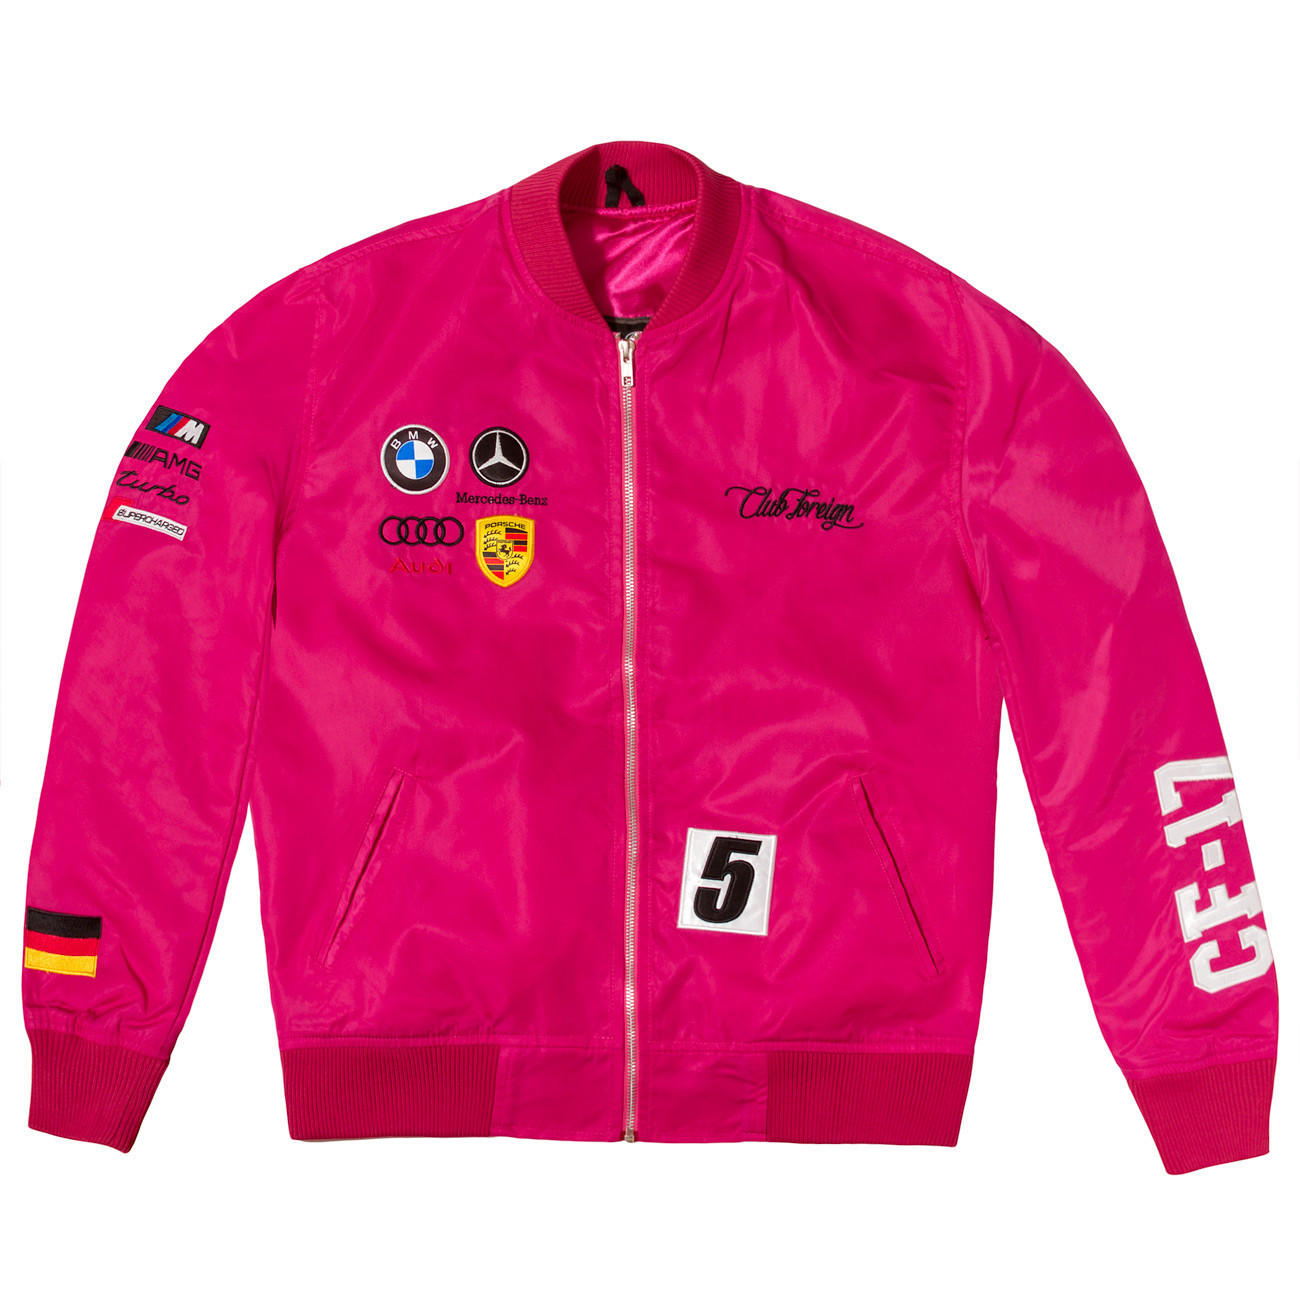 Image of Club Foreign Germany Racing Jacket Pink